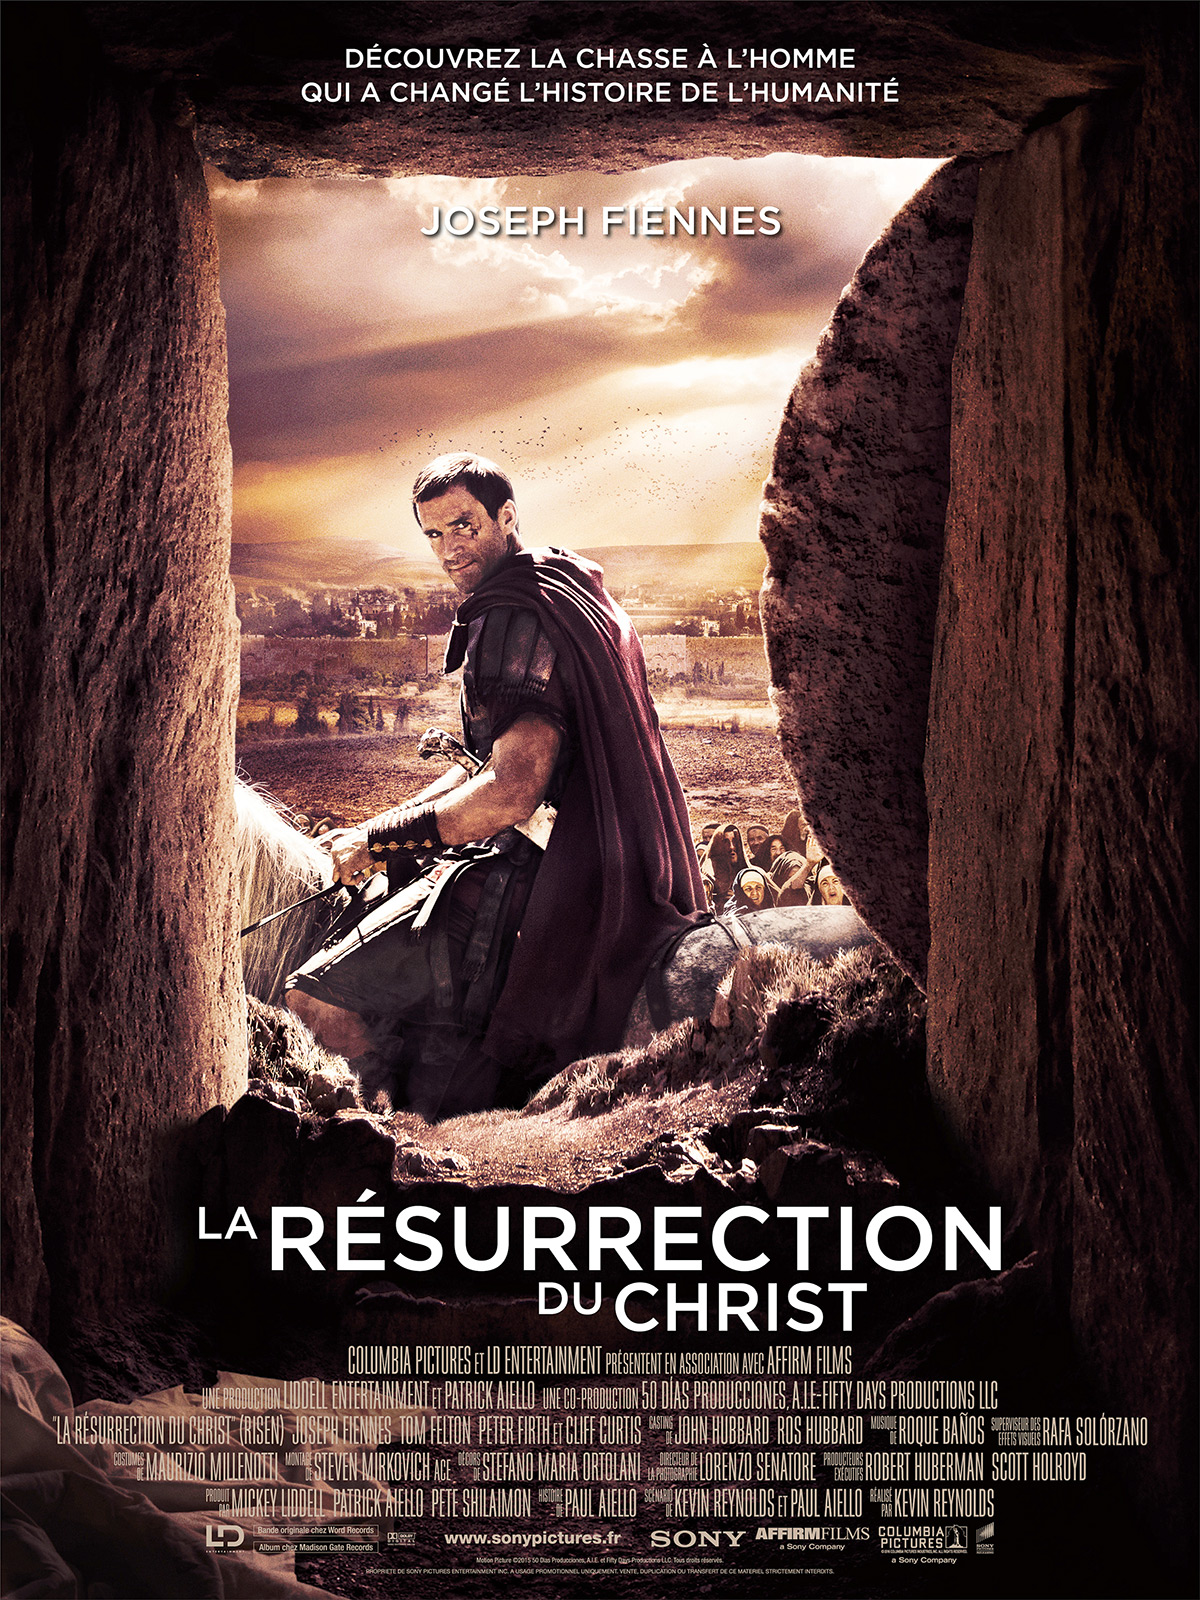 La Résurrection du Christ ddl